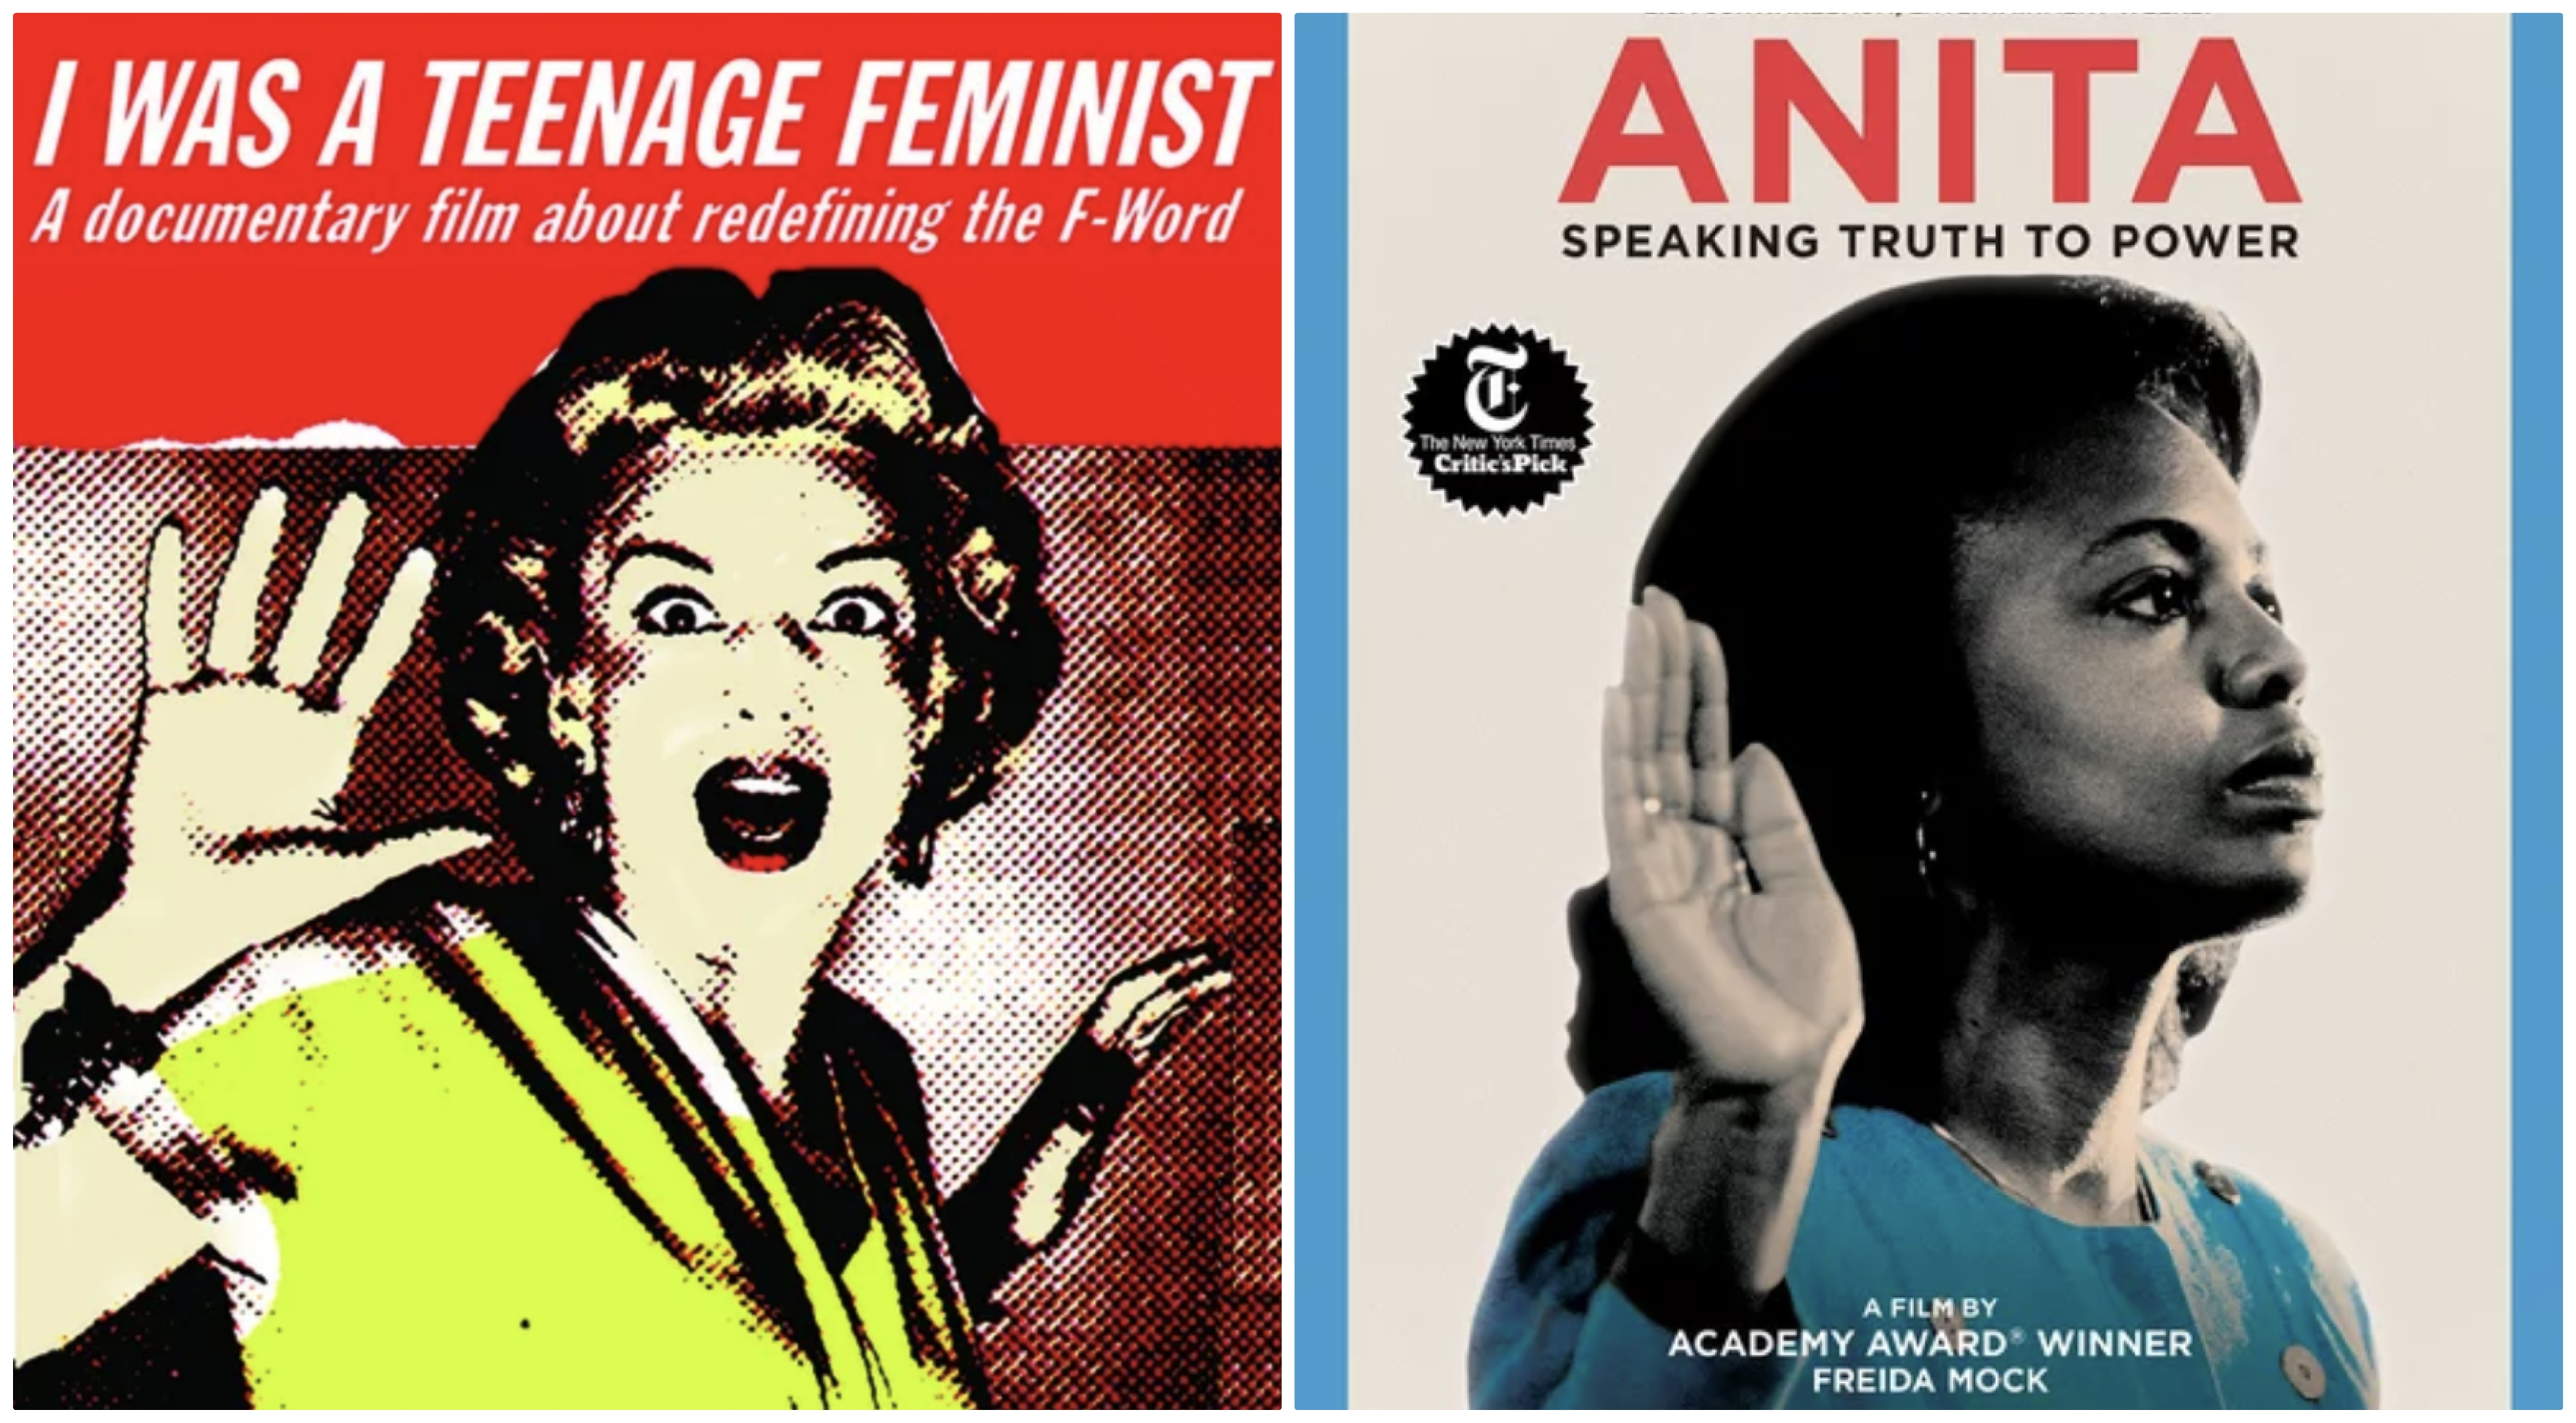 15 feminist films you can stream for free during Women's History Month